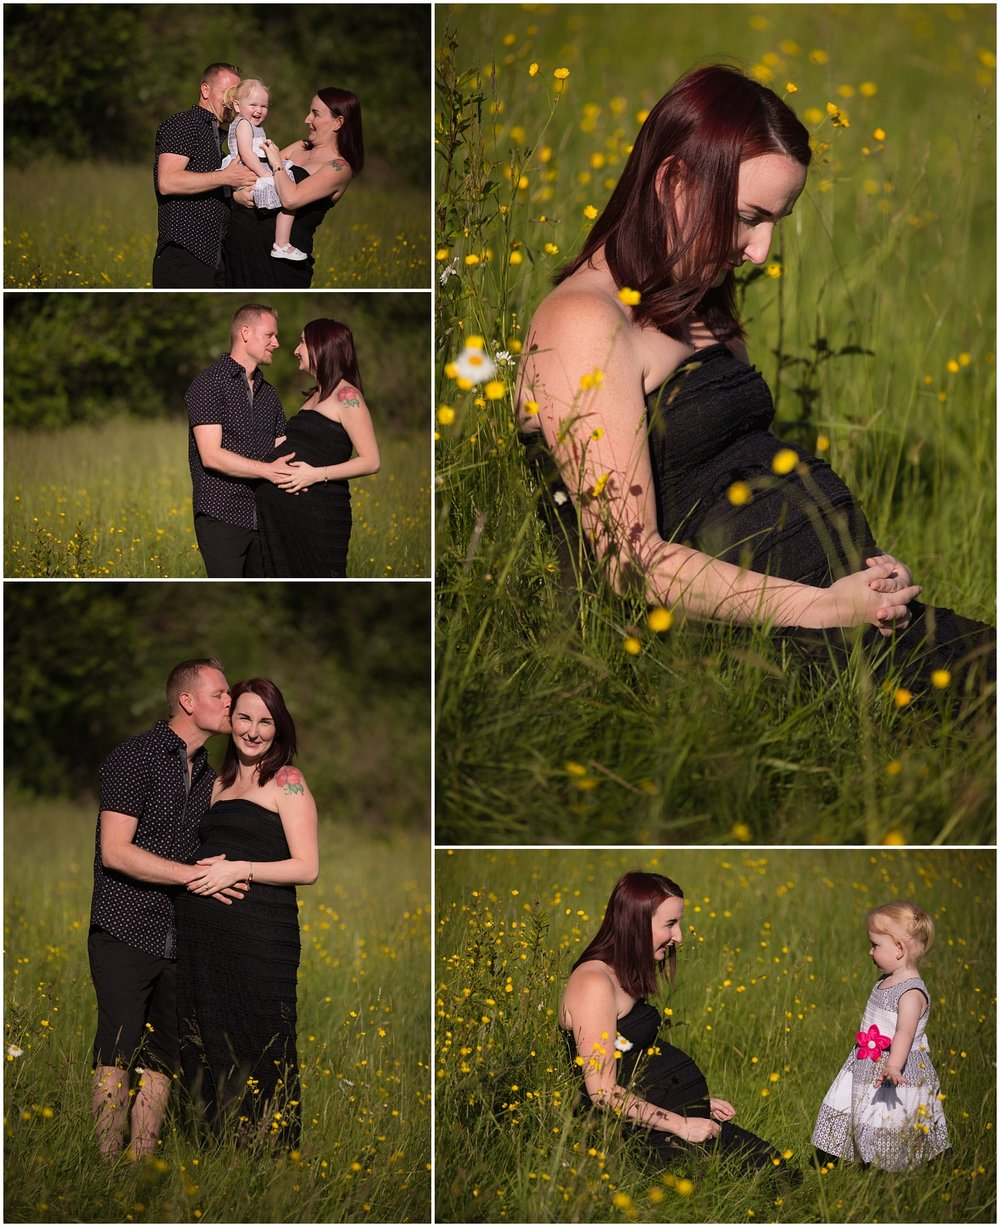 Amazing Day Photography - Derby Reach Park Maternity Session - Langley Maternity Photographer (2).jpg